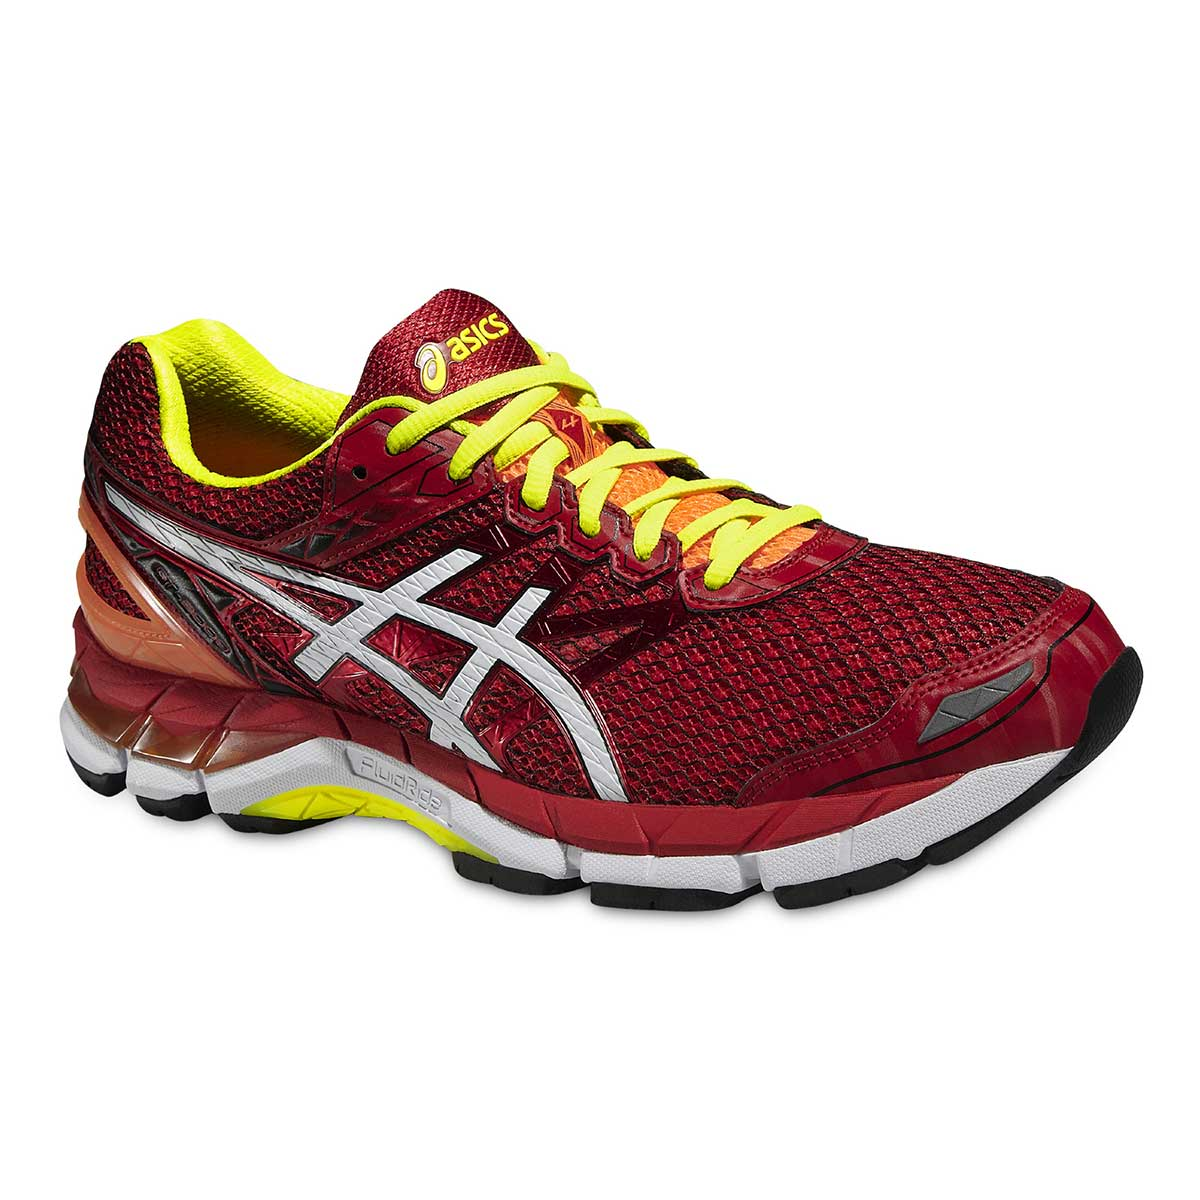 Running Shoes, Running, Buy, Asics, Asics GT-3000 4 Running Shoes (Racing  Red/White /Hot/Orange)